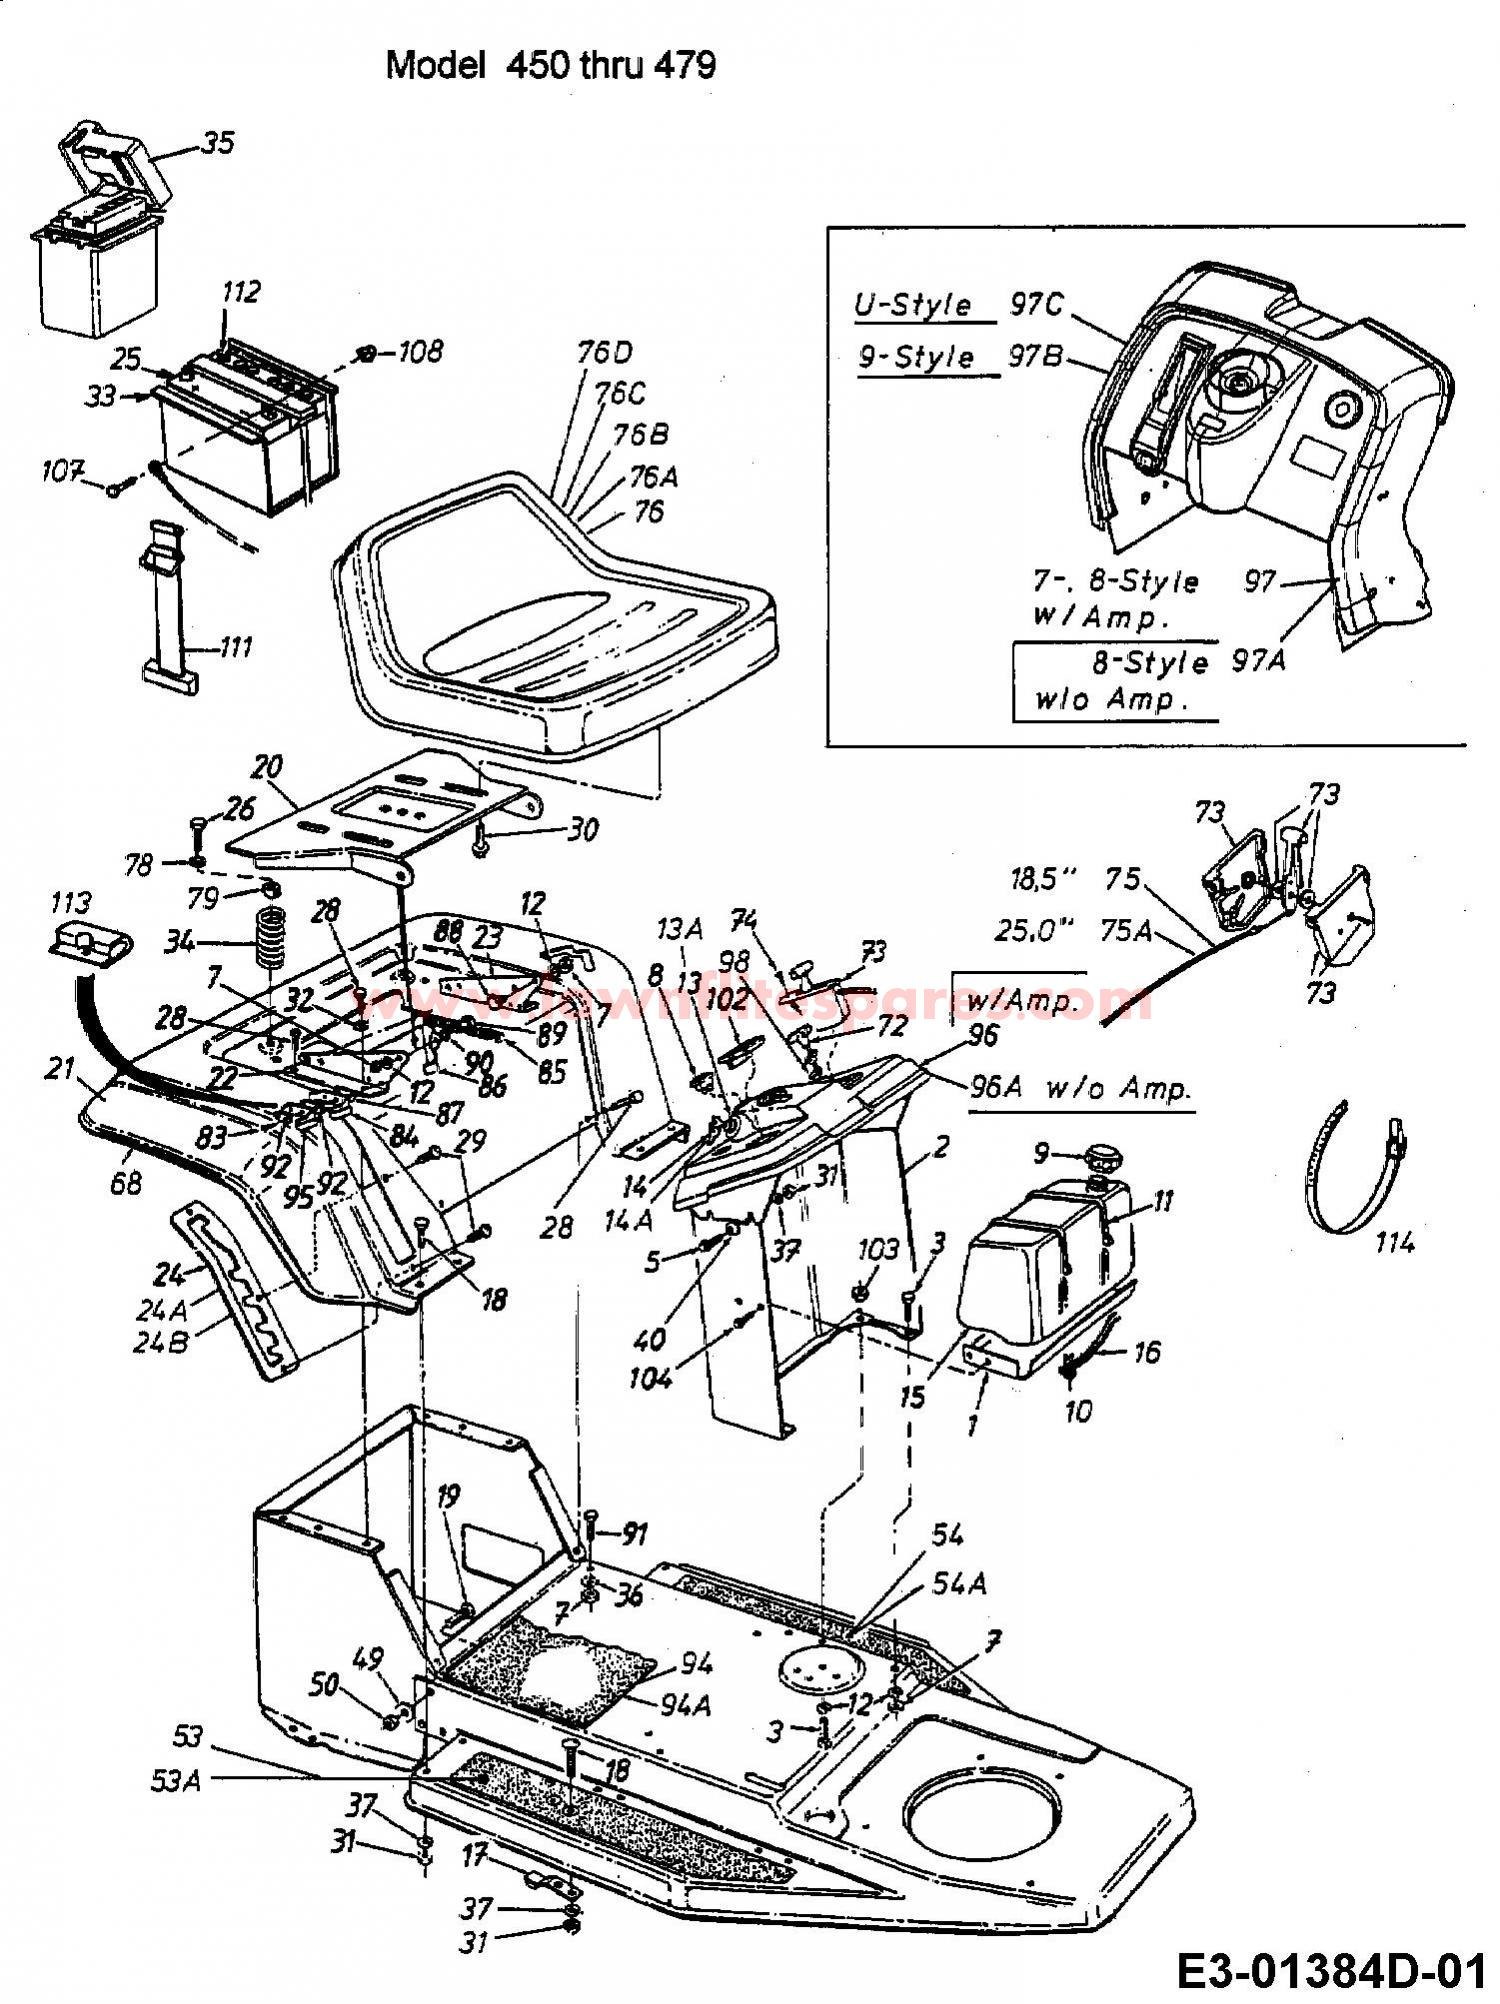 Wiring Diagram For John Deere L120 Mower – The Wiring Diagram ...